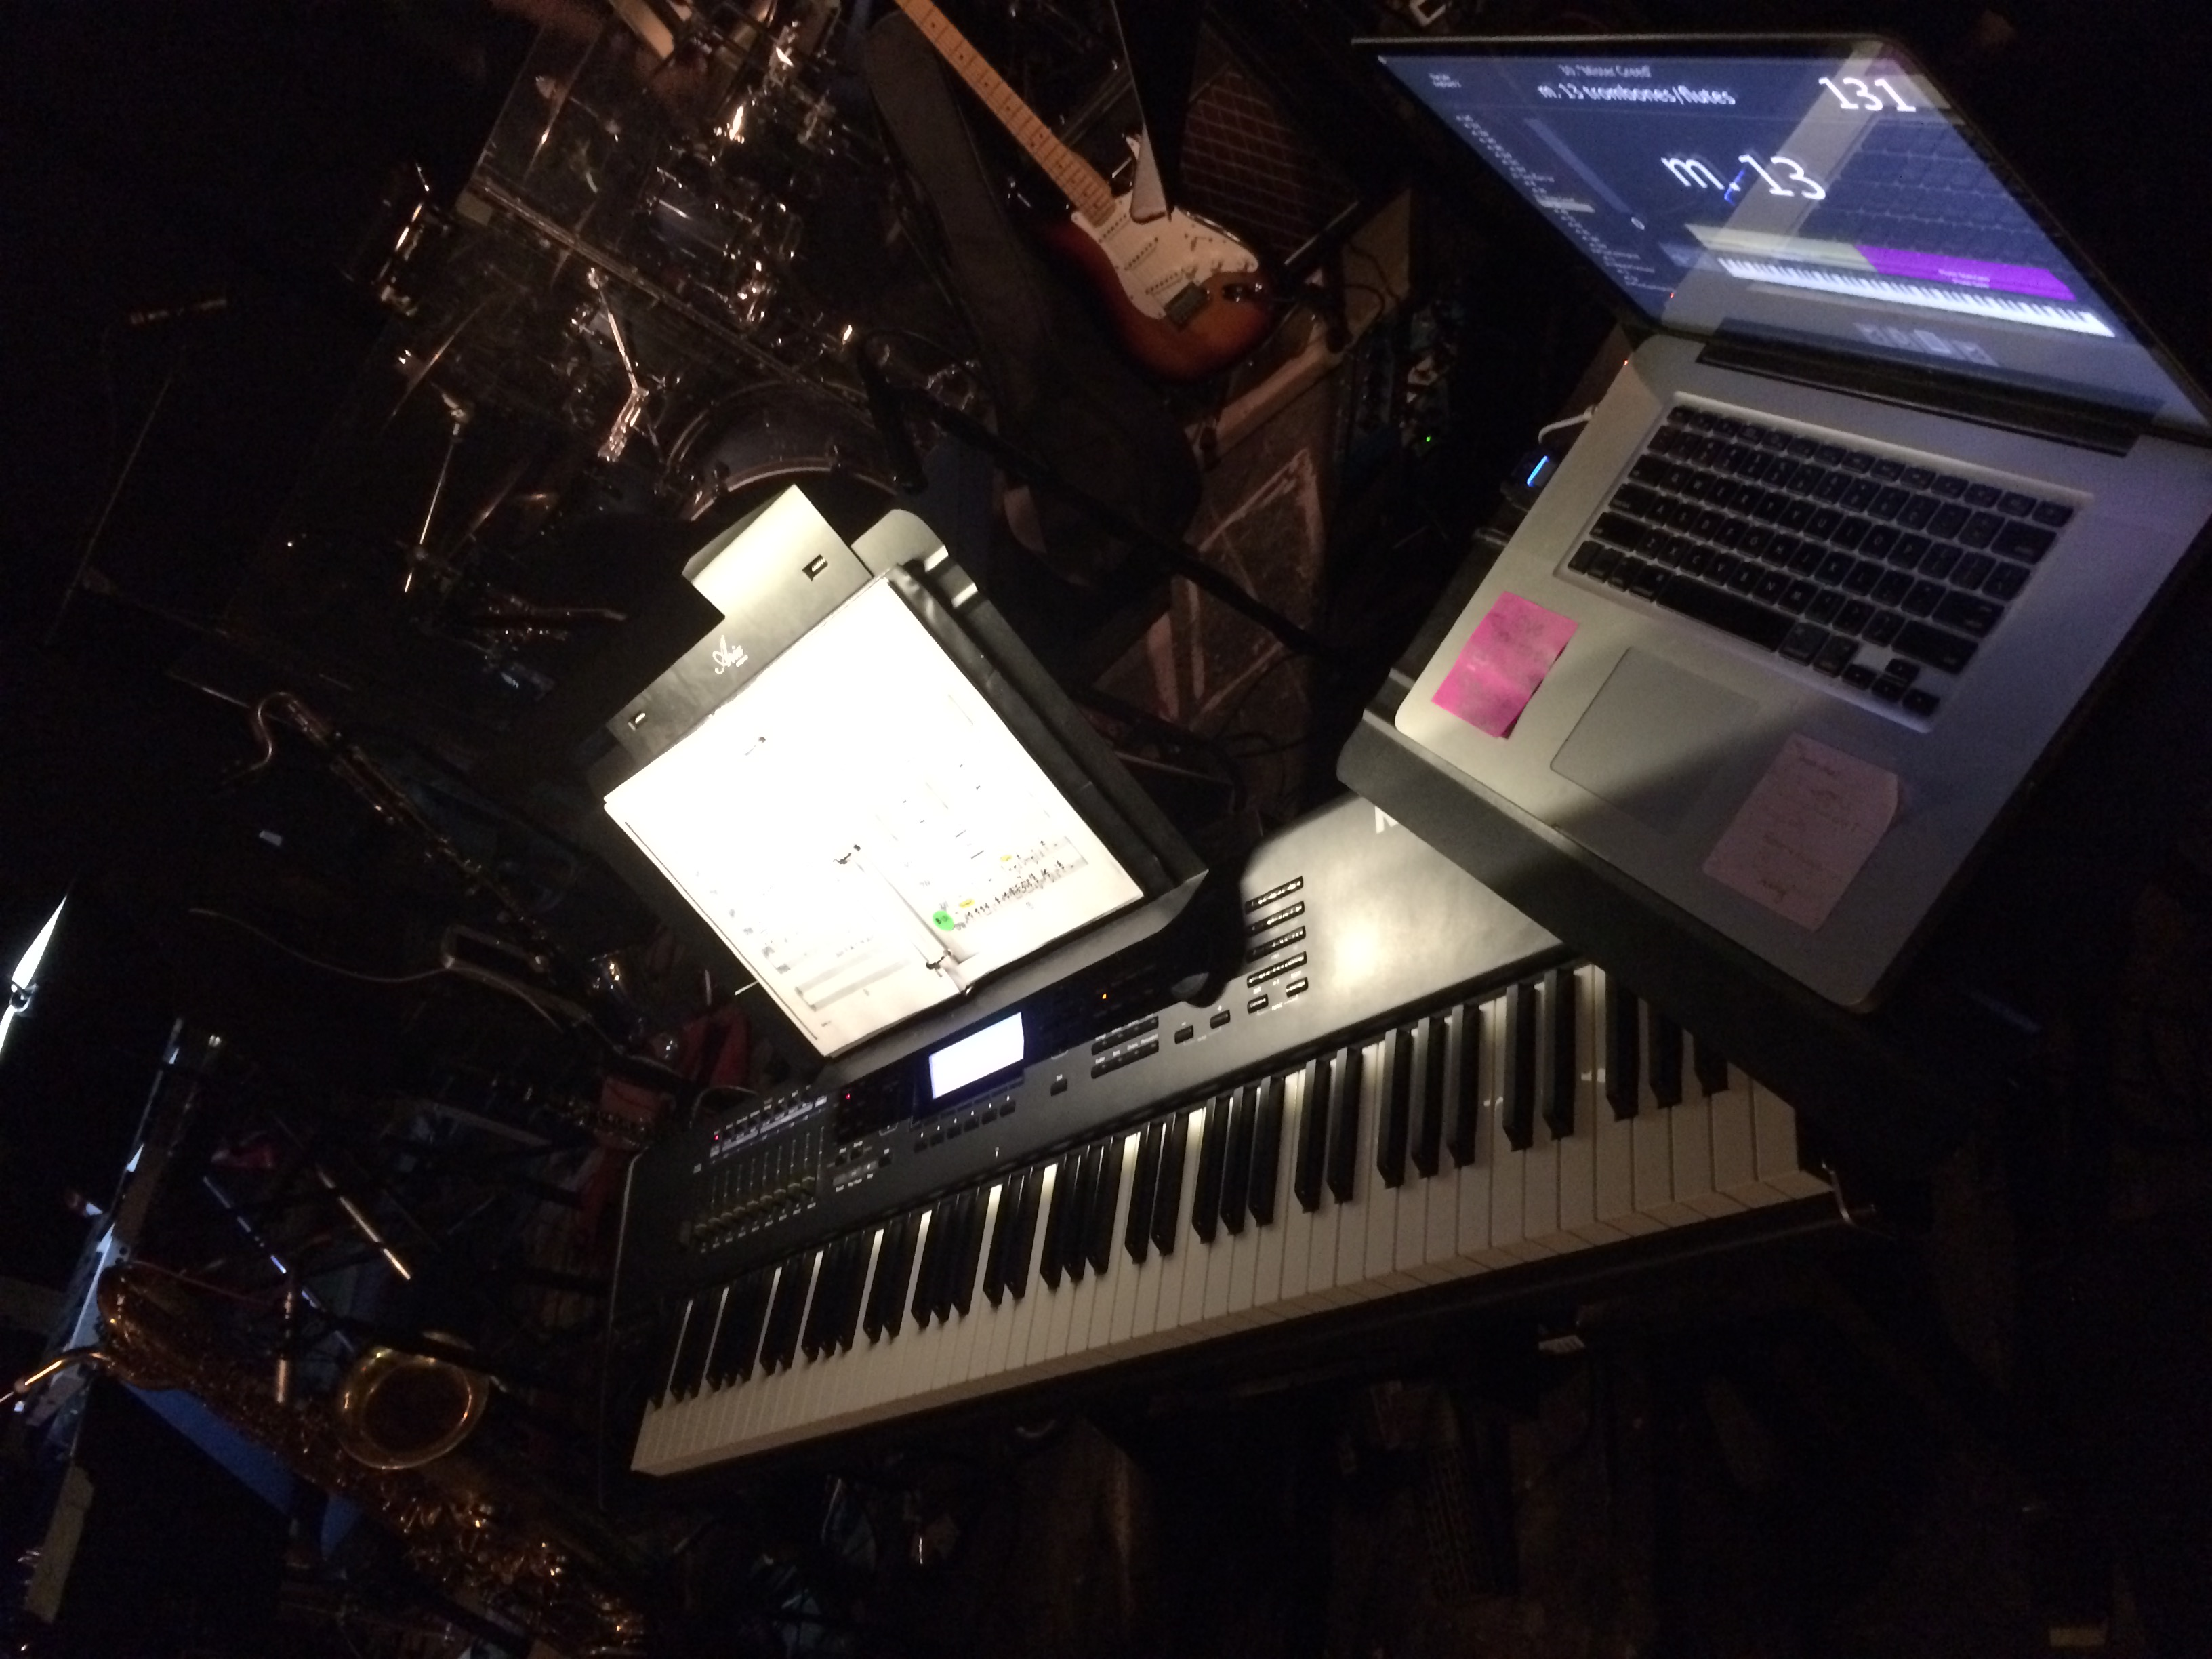 Keyboard rig before the show